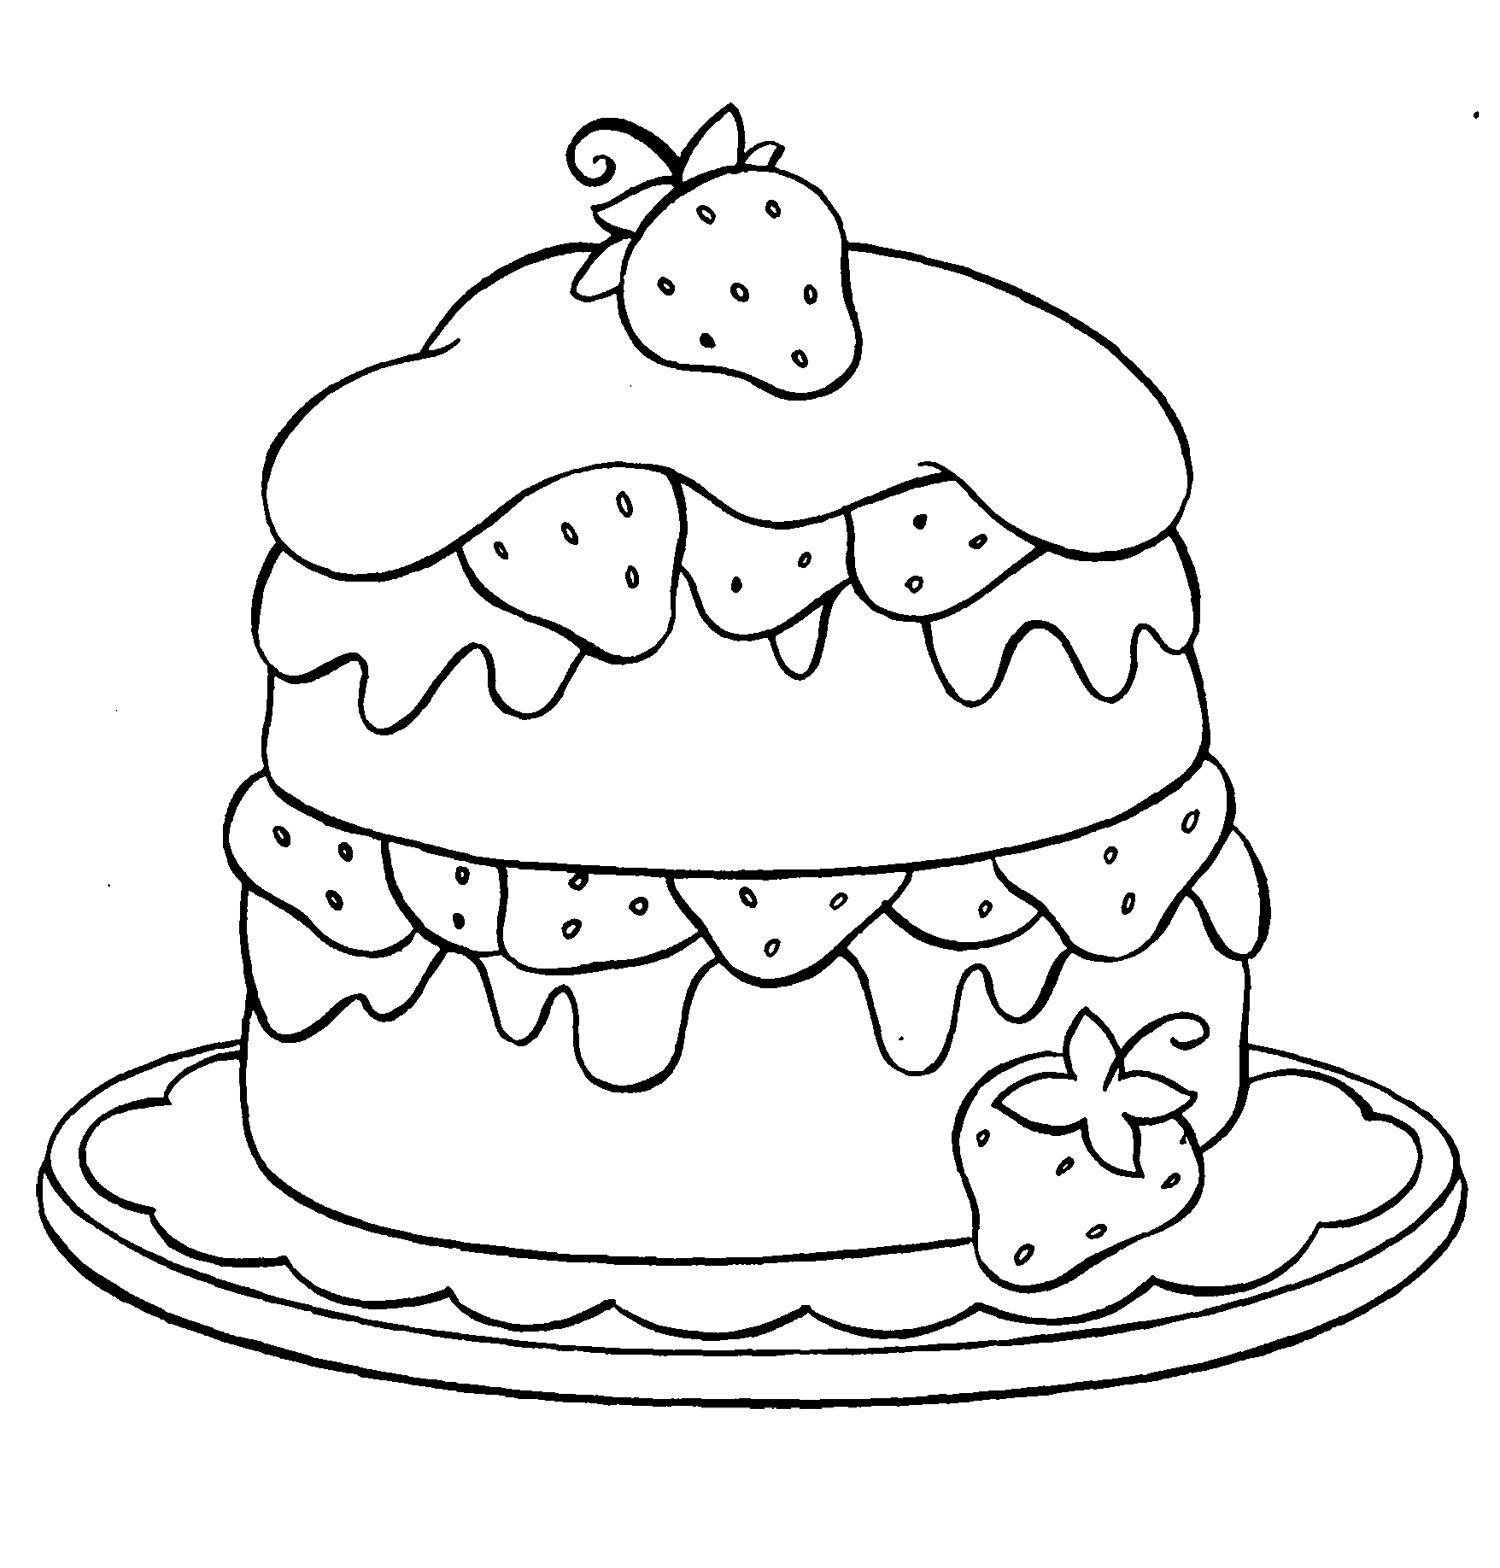 It's just a graphic of Inventive Coloring Pages Cake